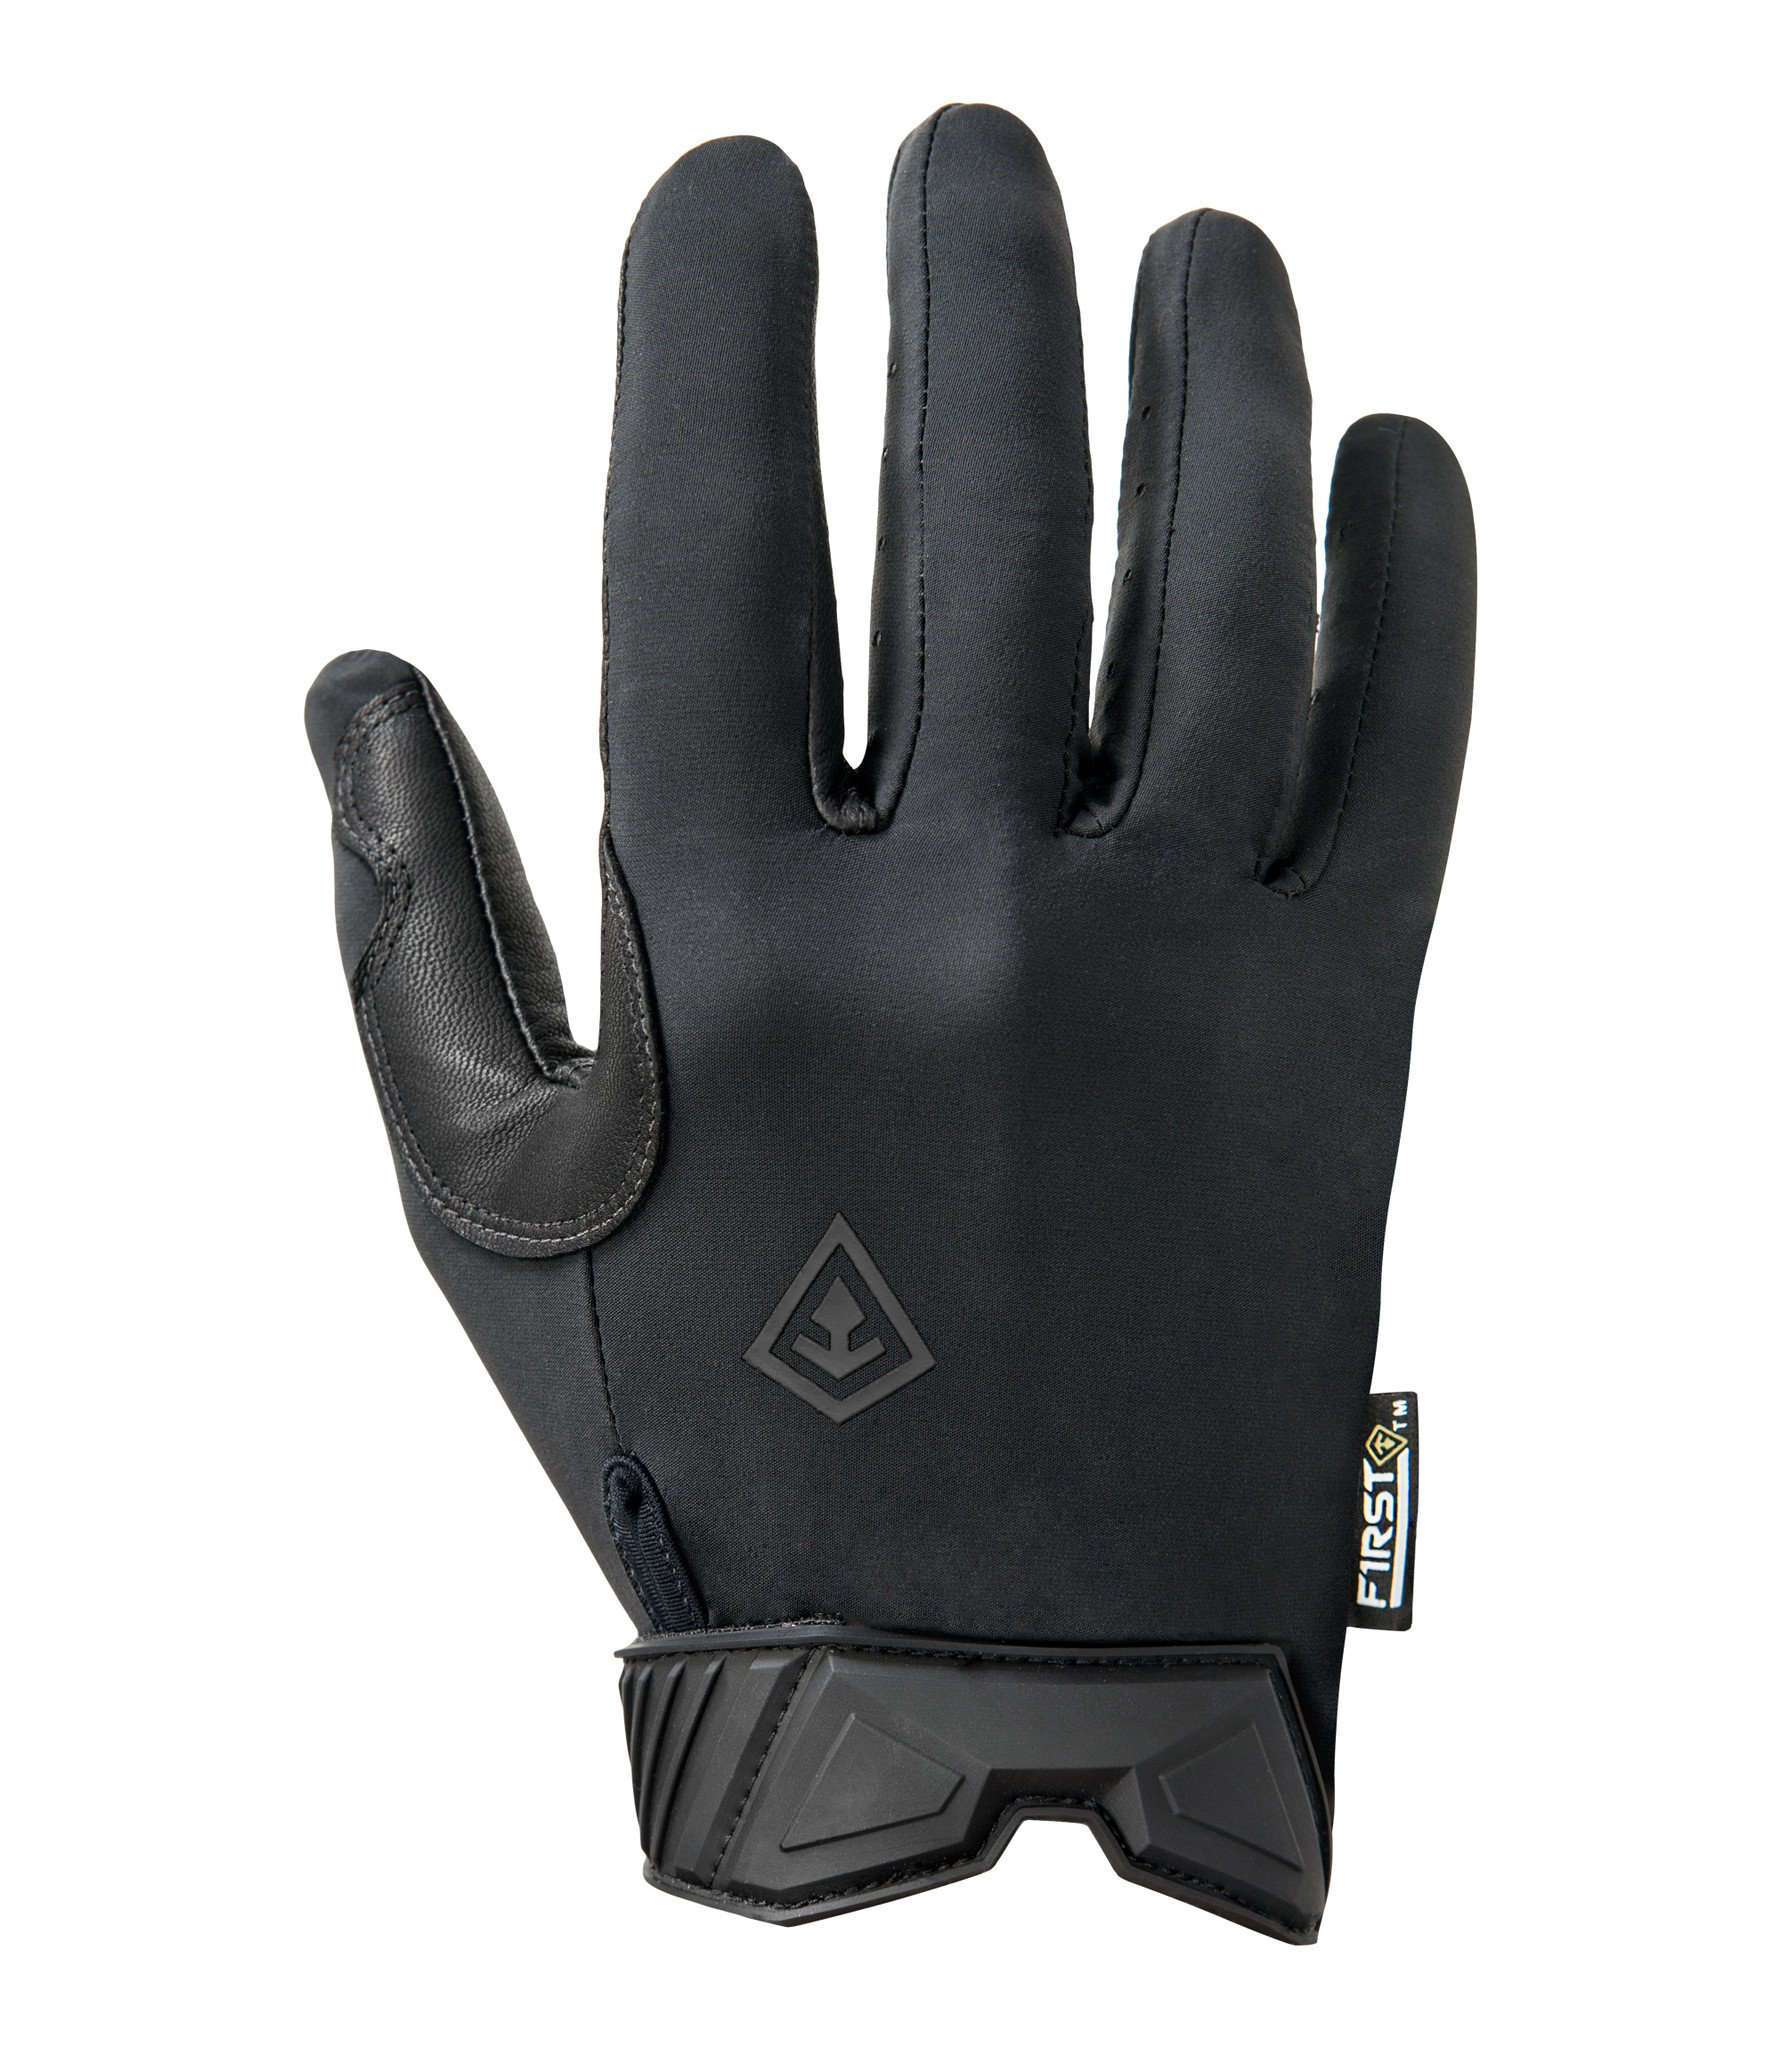 Men's Lightweight Patrol Glove (Black) | REG